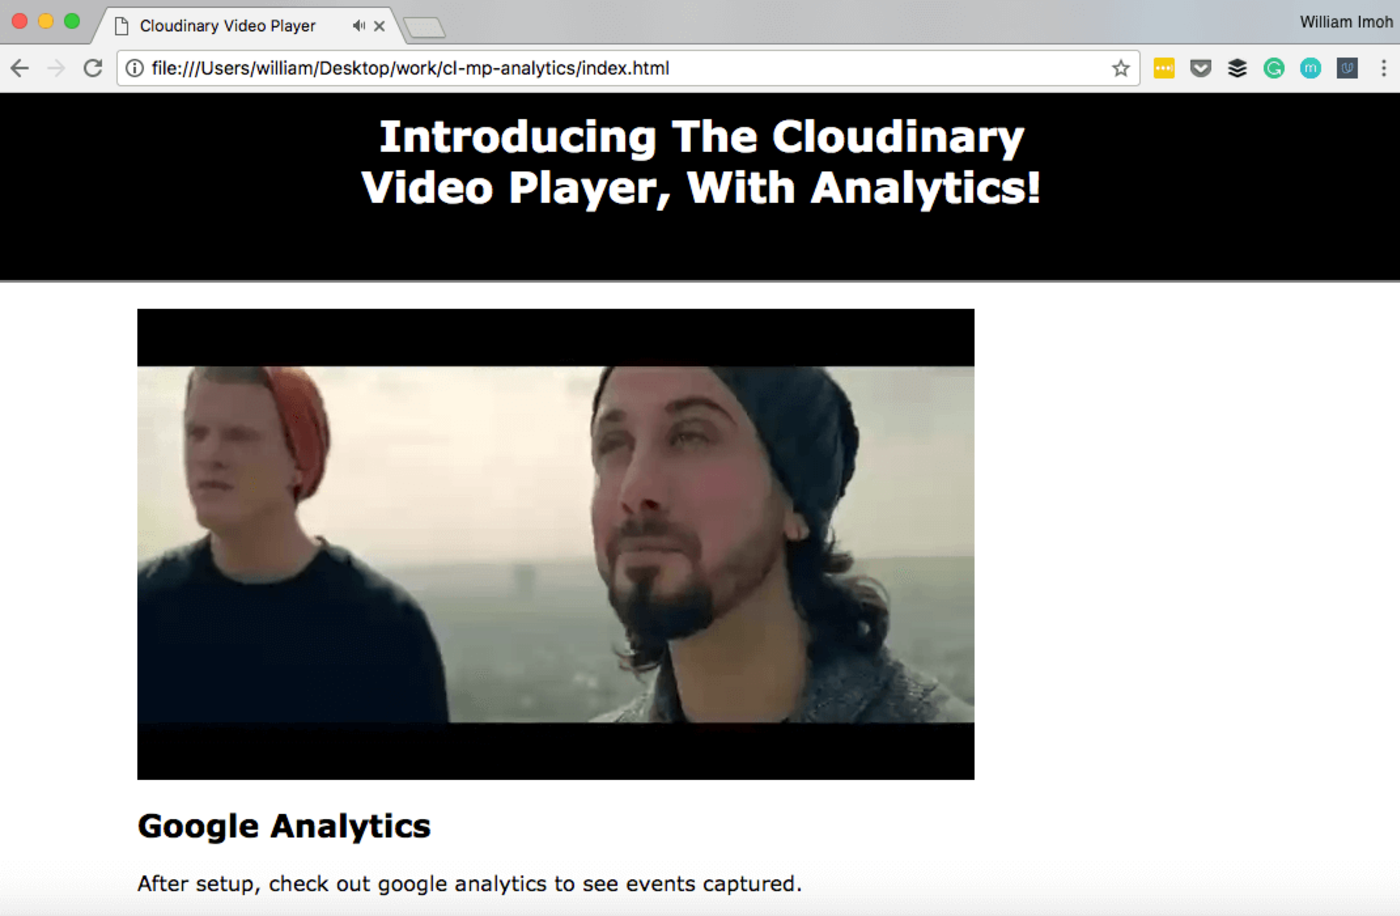 Google Analytics Video Tracking Made Simple